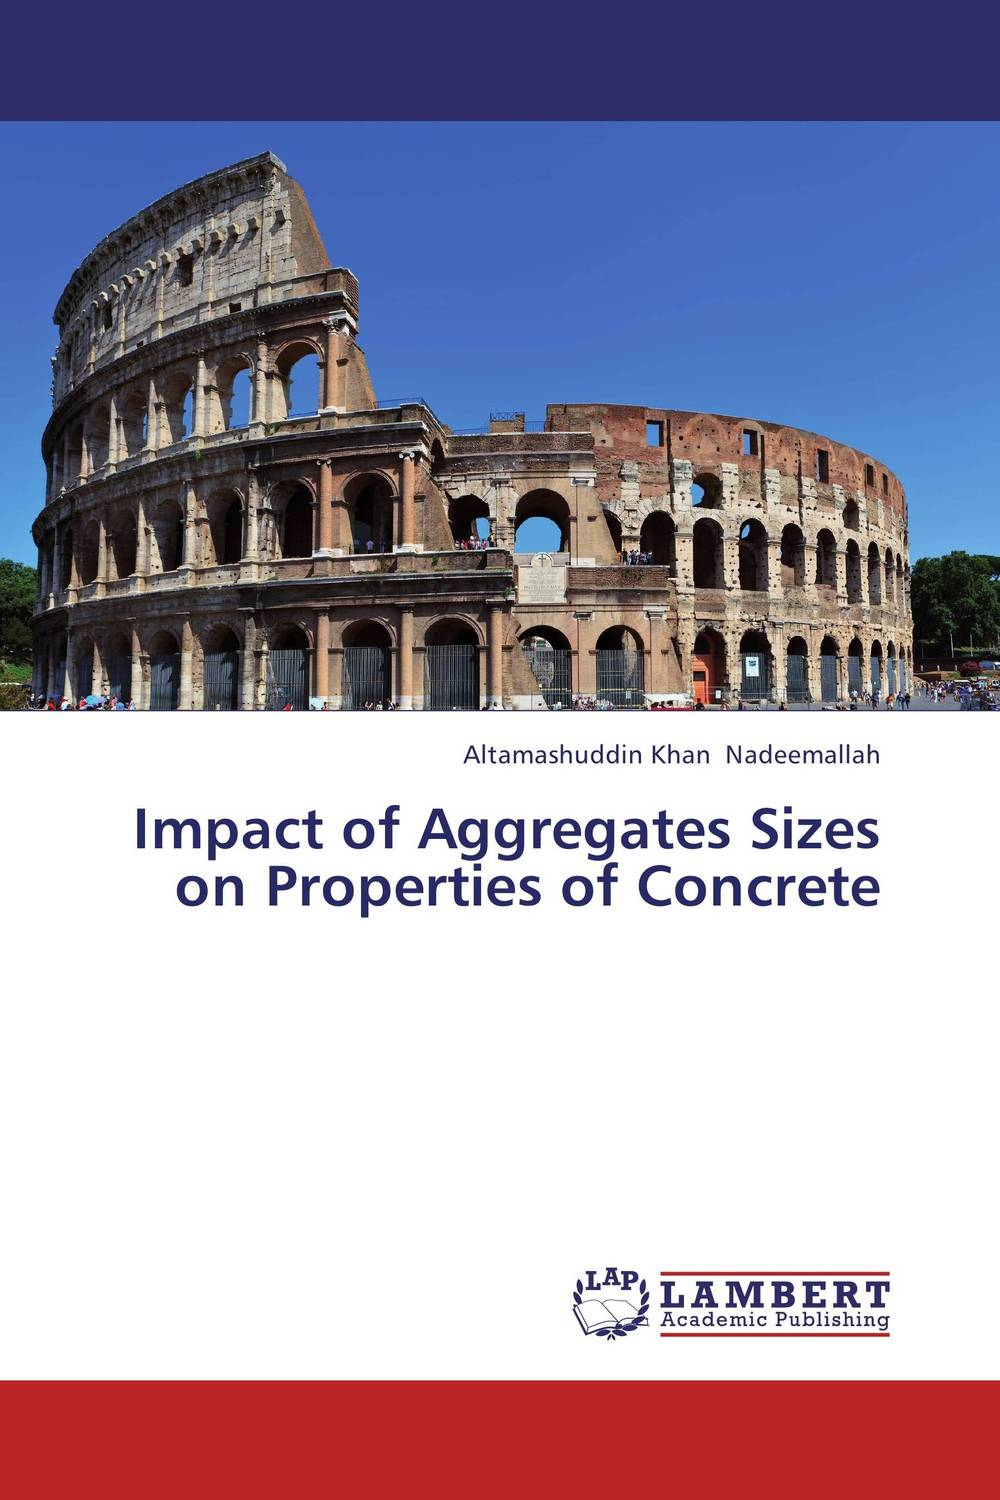 Impact of Aggregates Sizes on Properties of Concrete ravi maddaly madhumitha haridoss and sai keerthana wuppalapati aggregates of cell lines on agarose hydrogels